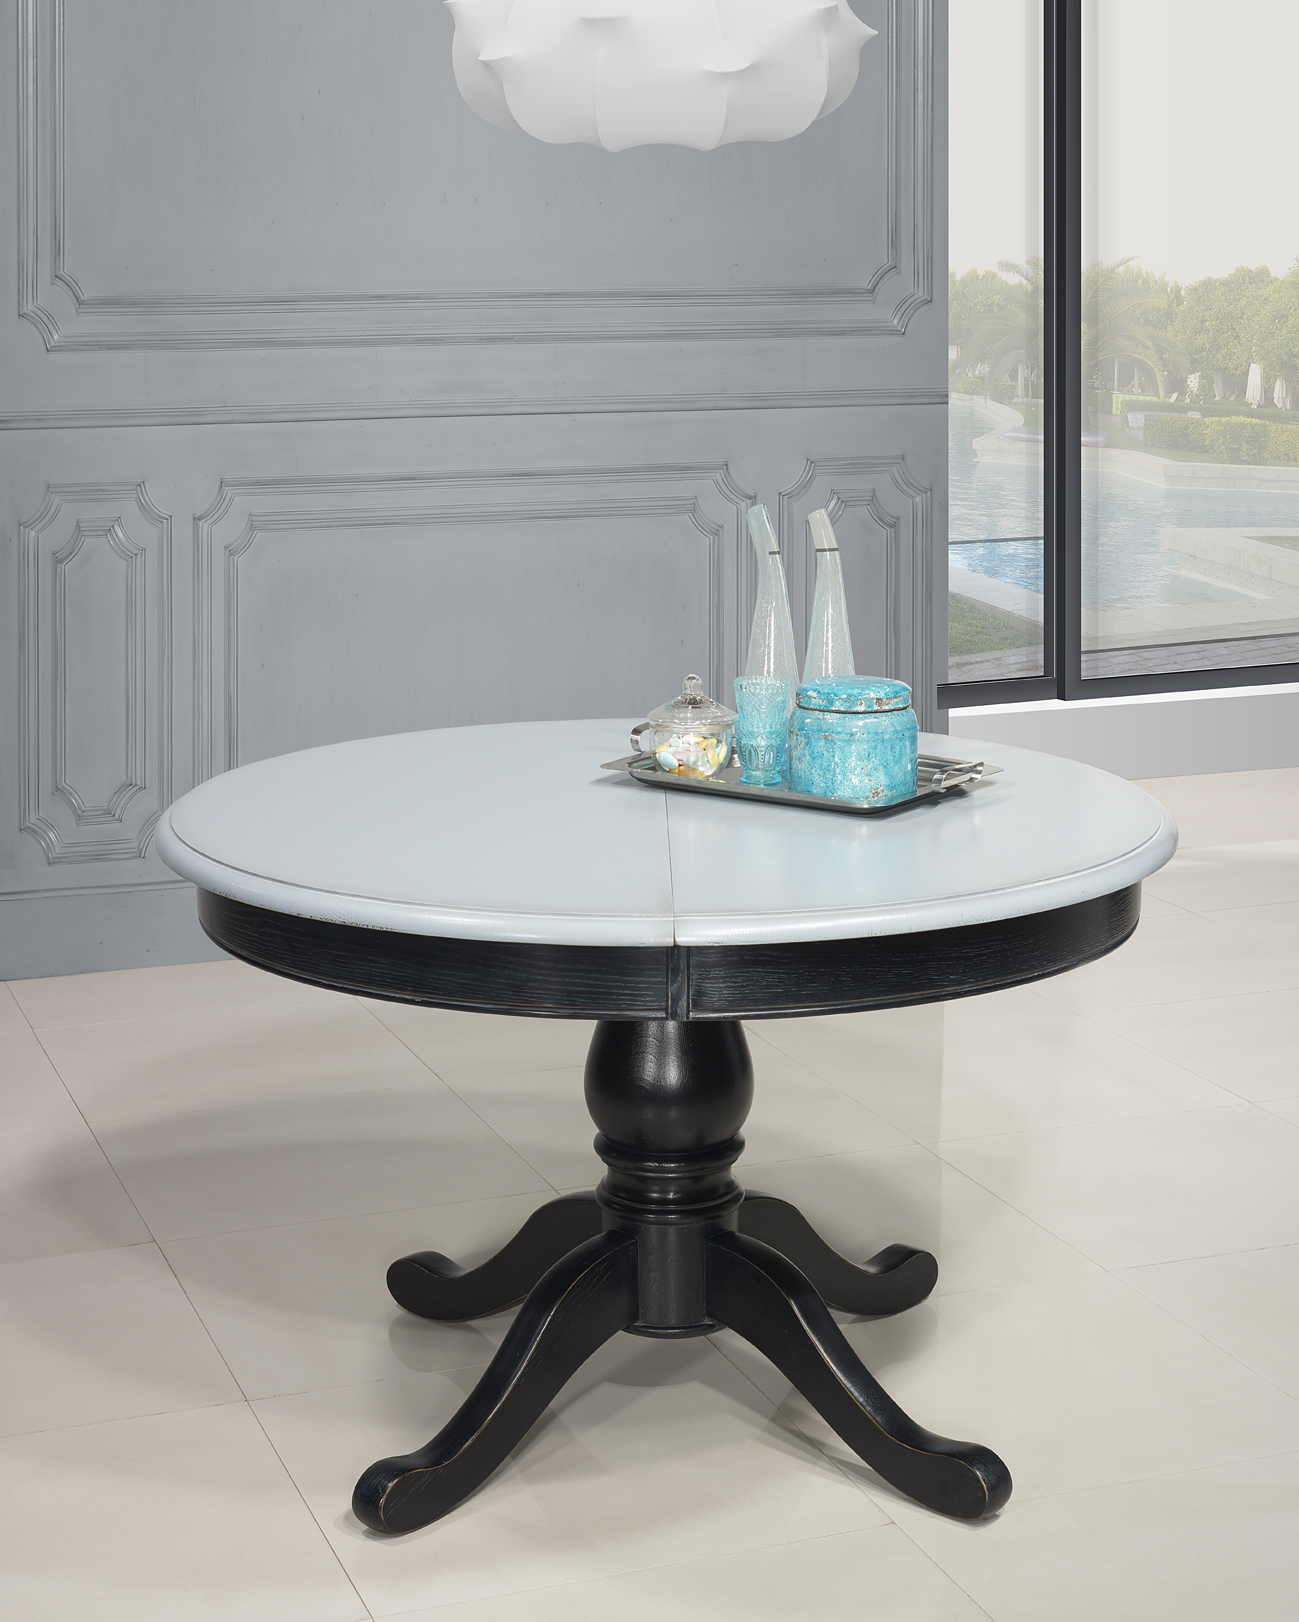 Table ronde pied central en ch ne massif de style louis philippe diametre 120 - Table basse pied central ...